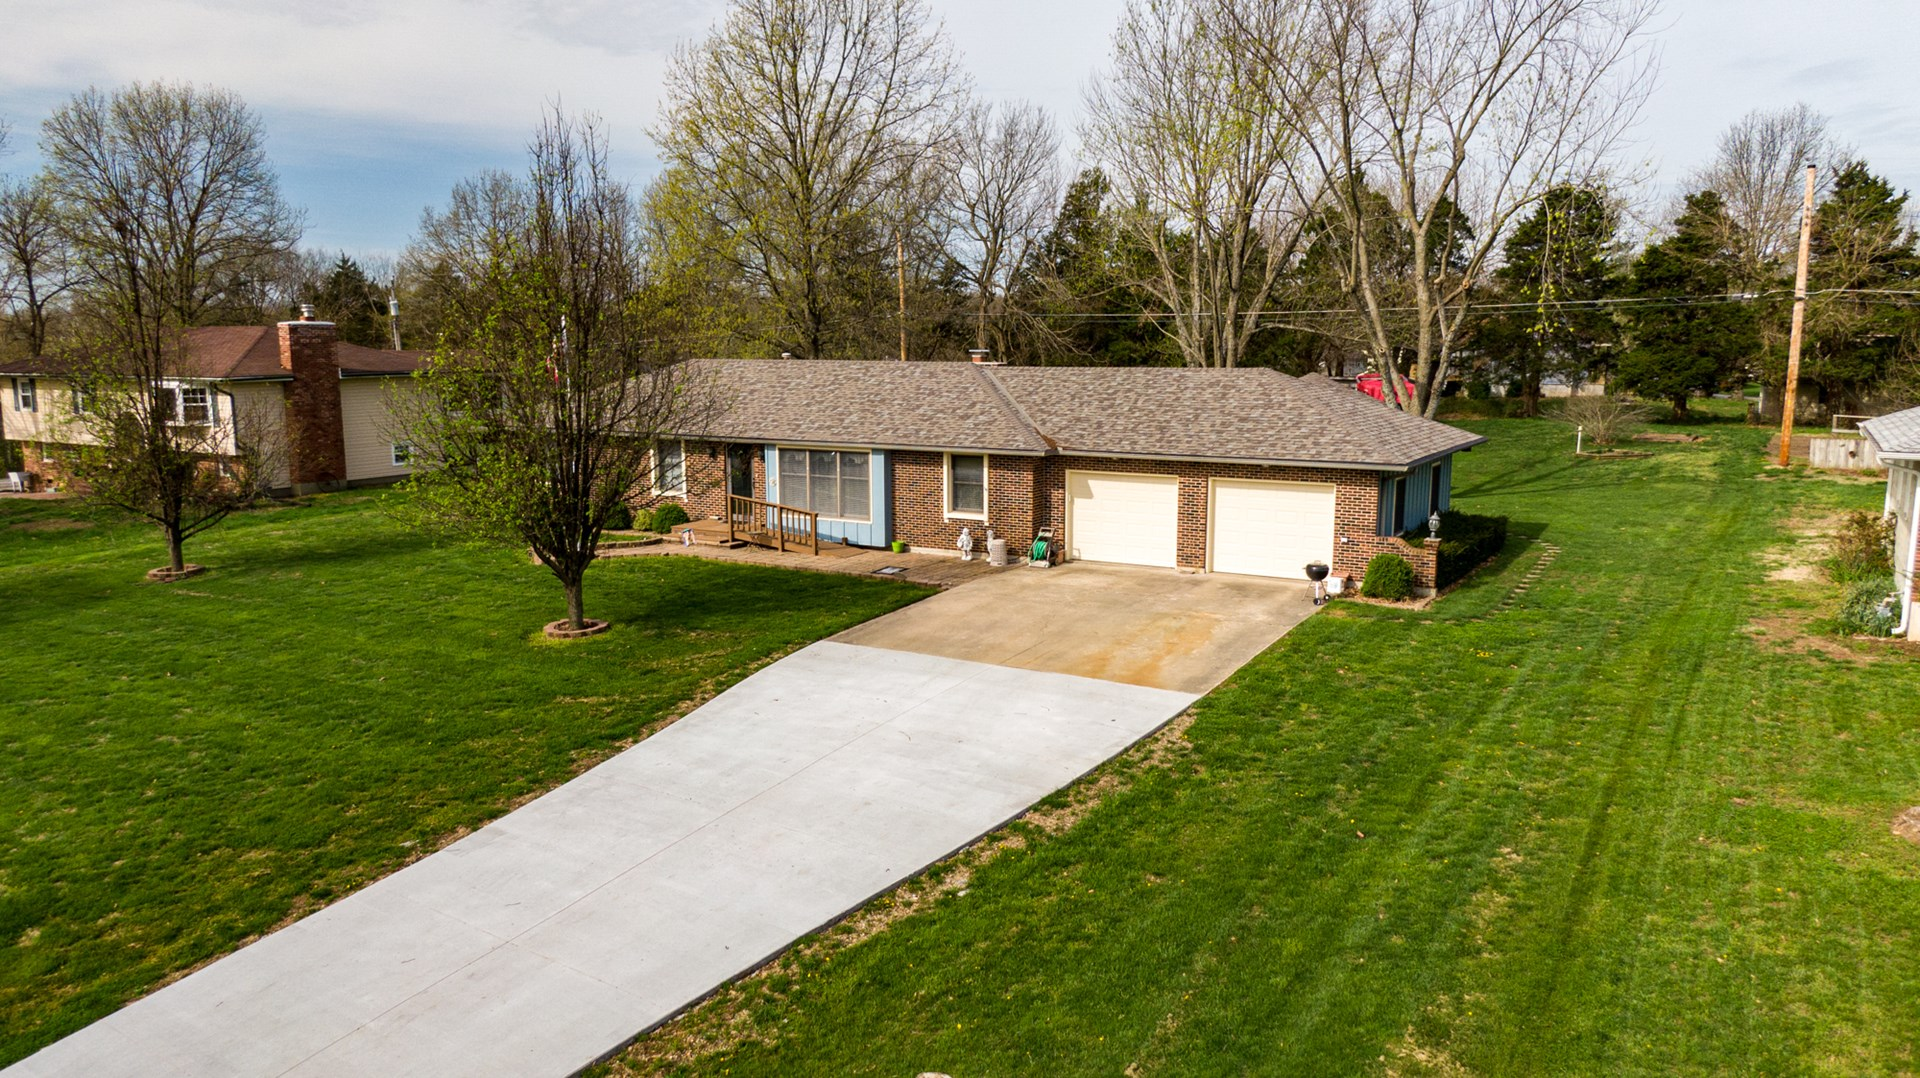 Green Acres Home For Sale, Warrensburg Mo